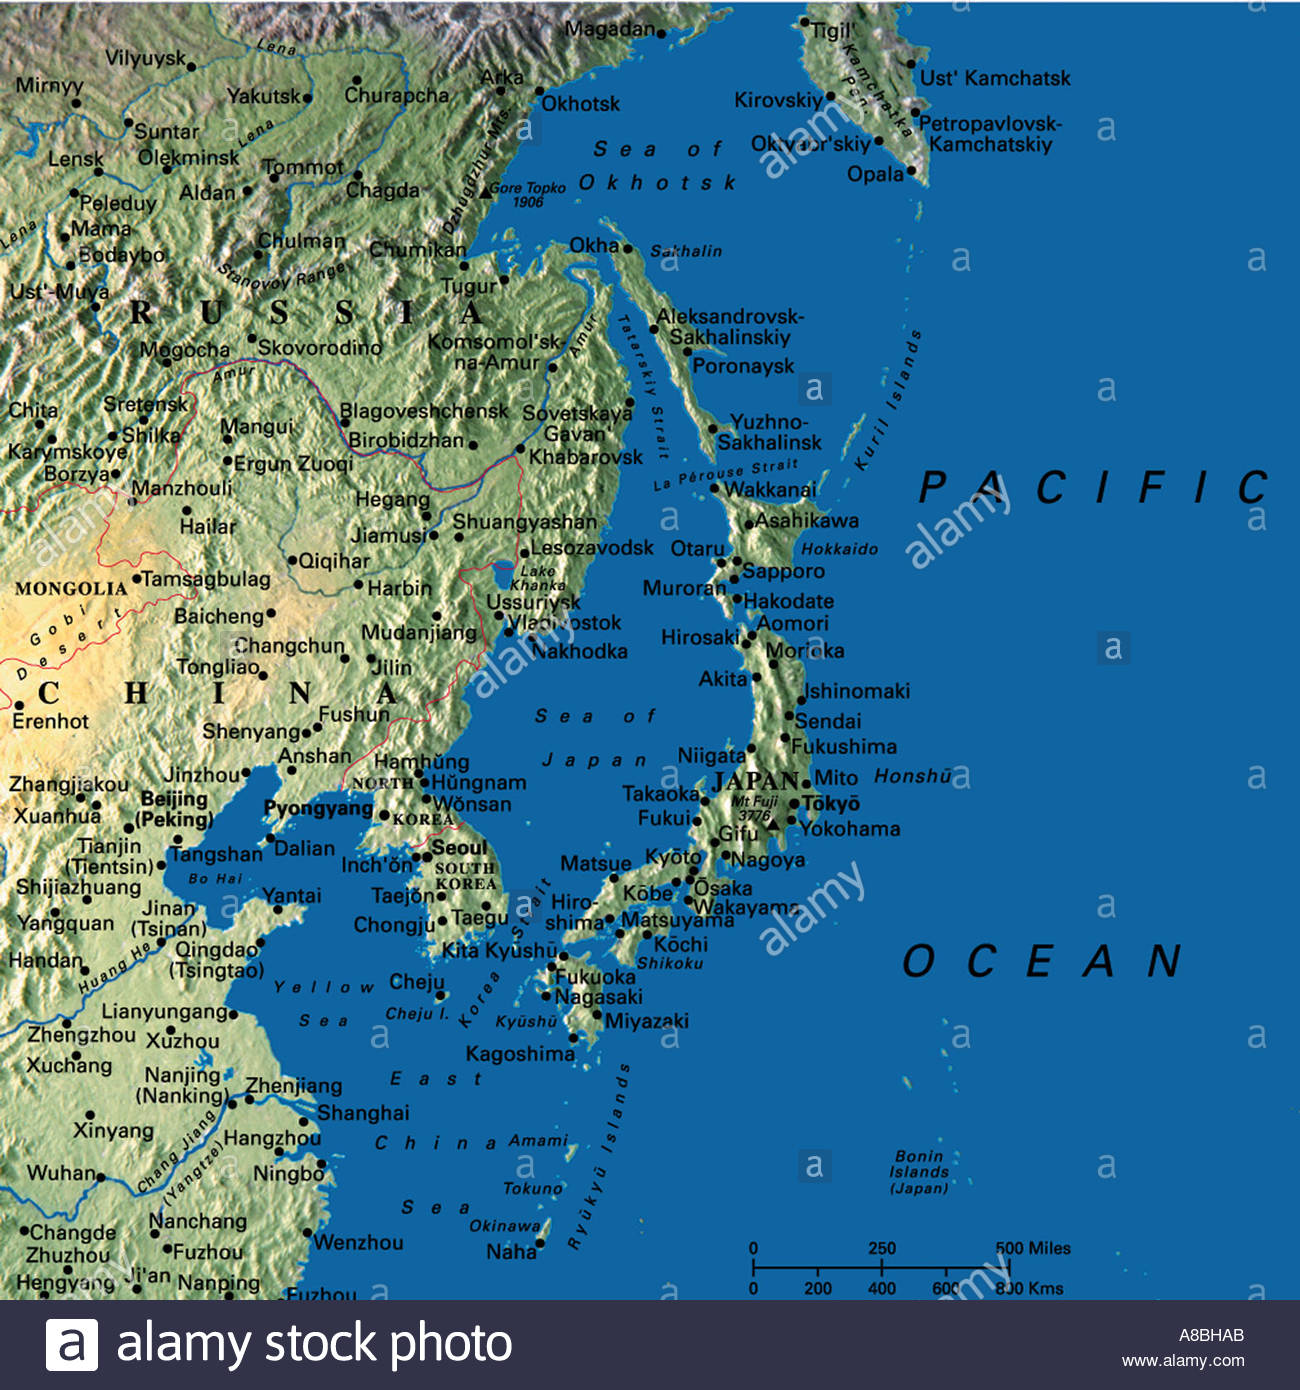 Map Of Asia Japan And China.Map Maps Asia Japan China Korea Stock Photo 3933610 Alamy